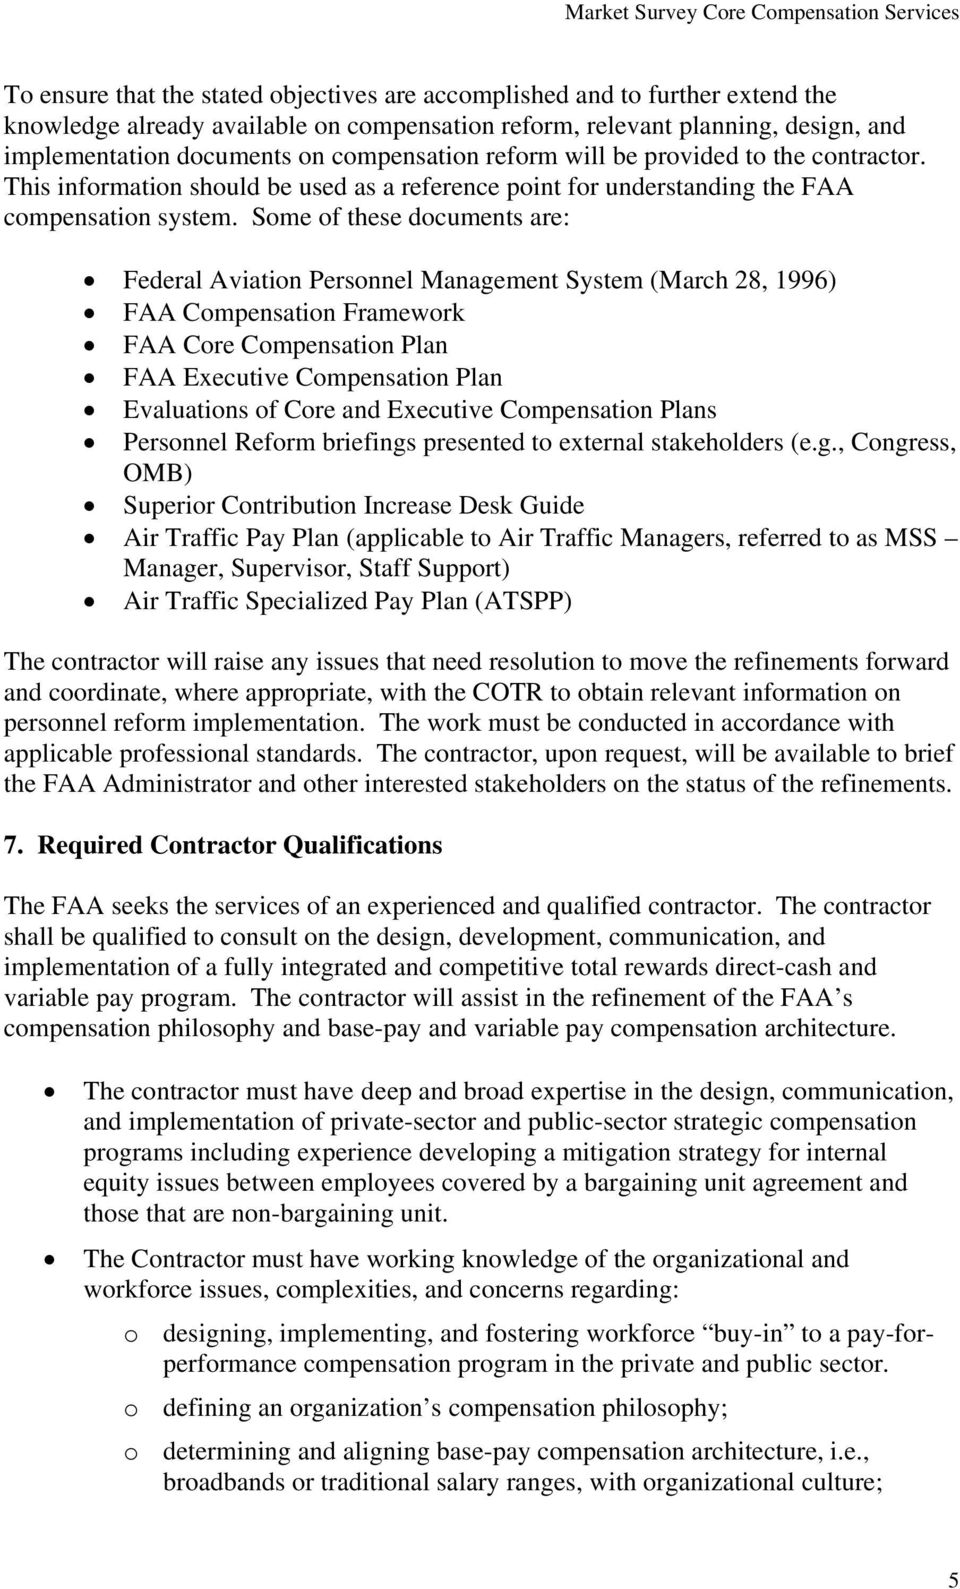 Some of these documents are: Federal Aviation Personnel Management System (March 28, 1996) FAA Compensation Framework FAA Core Compensation Plan FAA Executive Compensation Plan Evaluations of Core